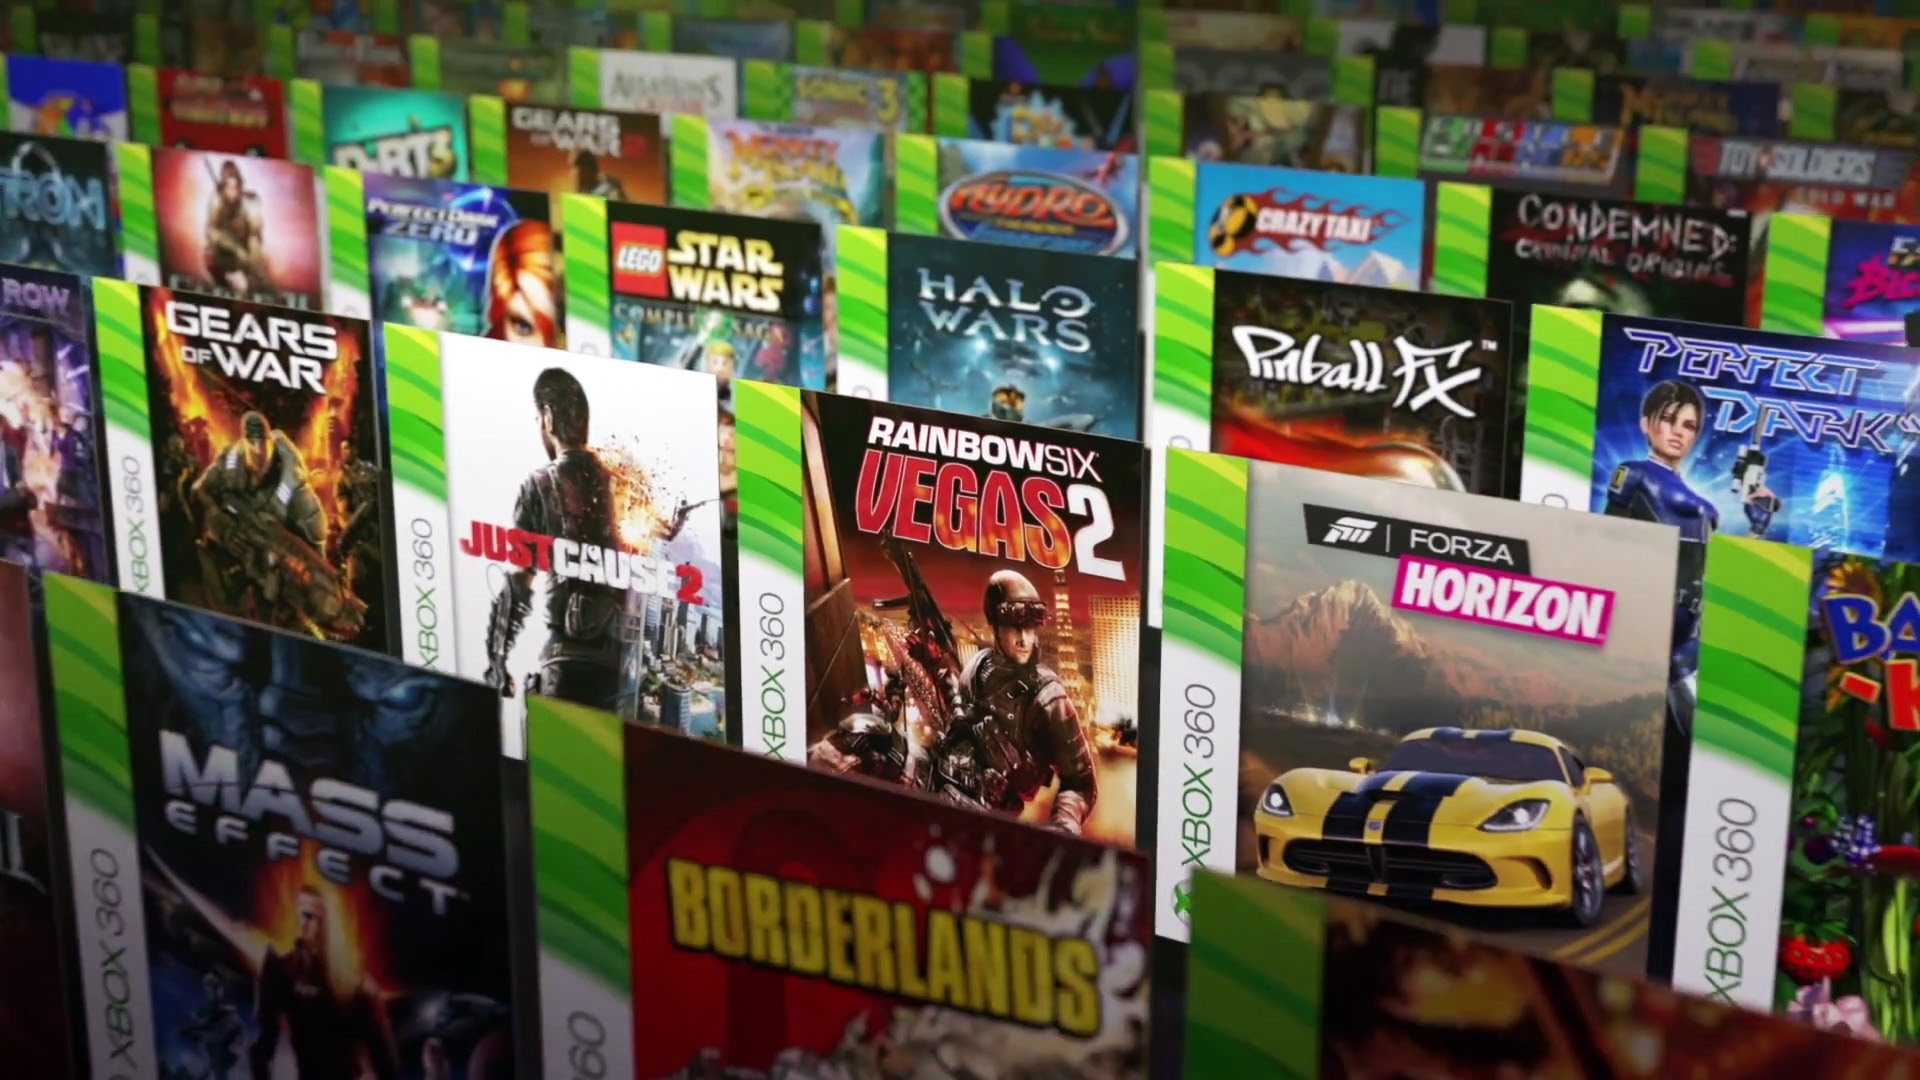 X Box Games For The Orginal : Xbox backwards compatibility fans in for big original